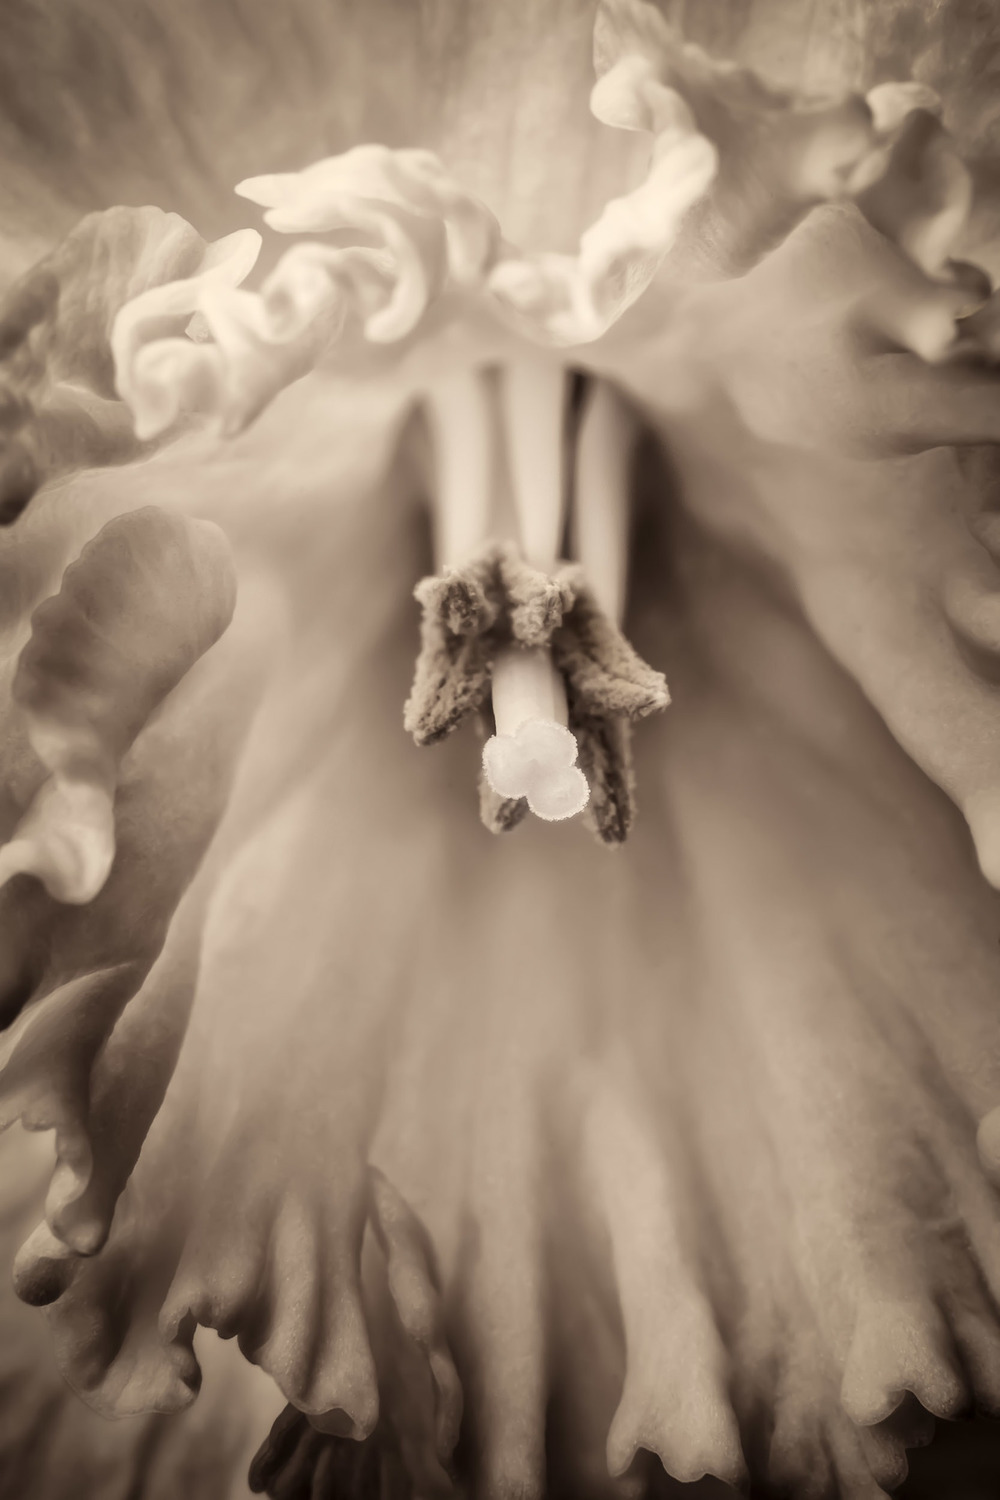 Daffodil, by David Perry Lawrence. All rights reserved.